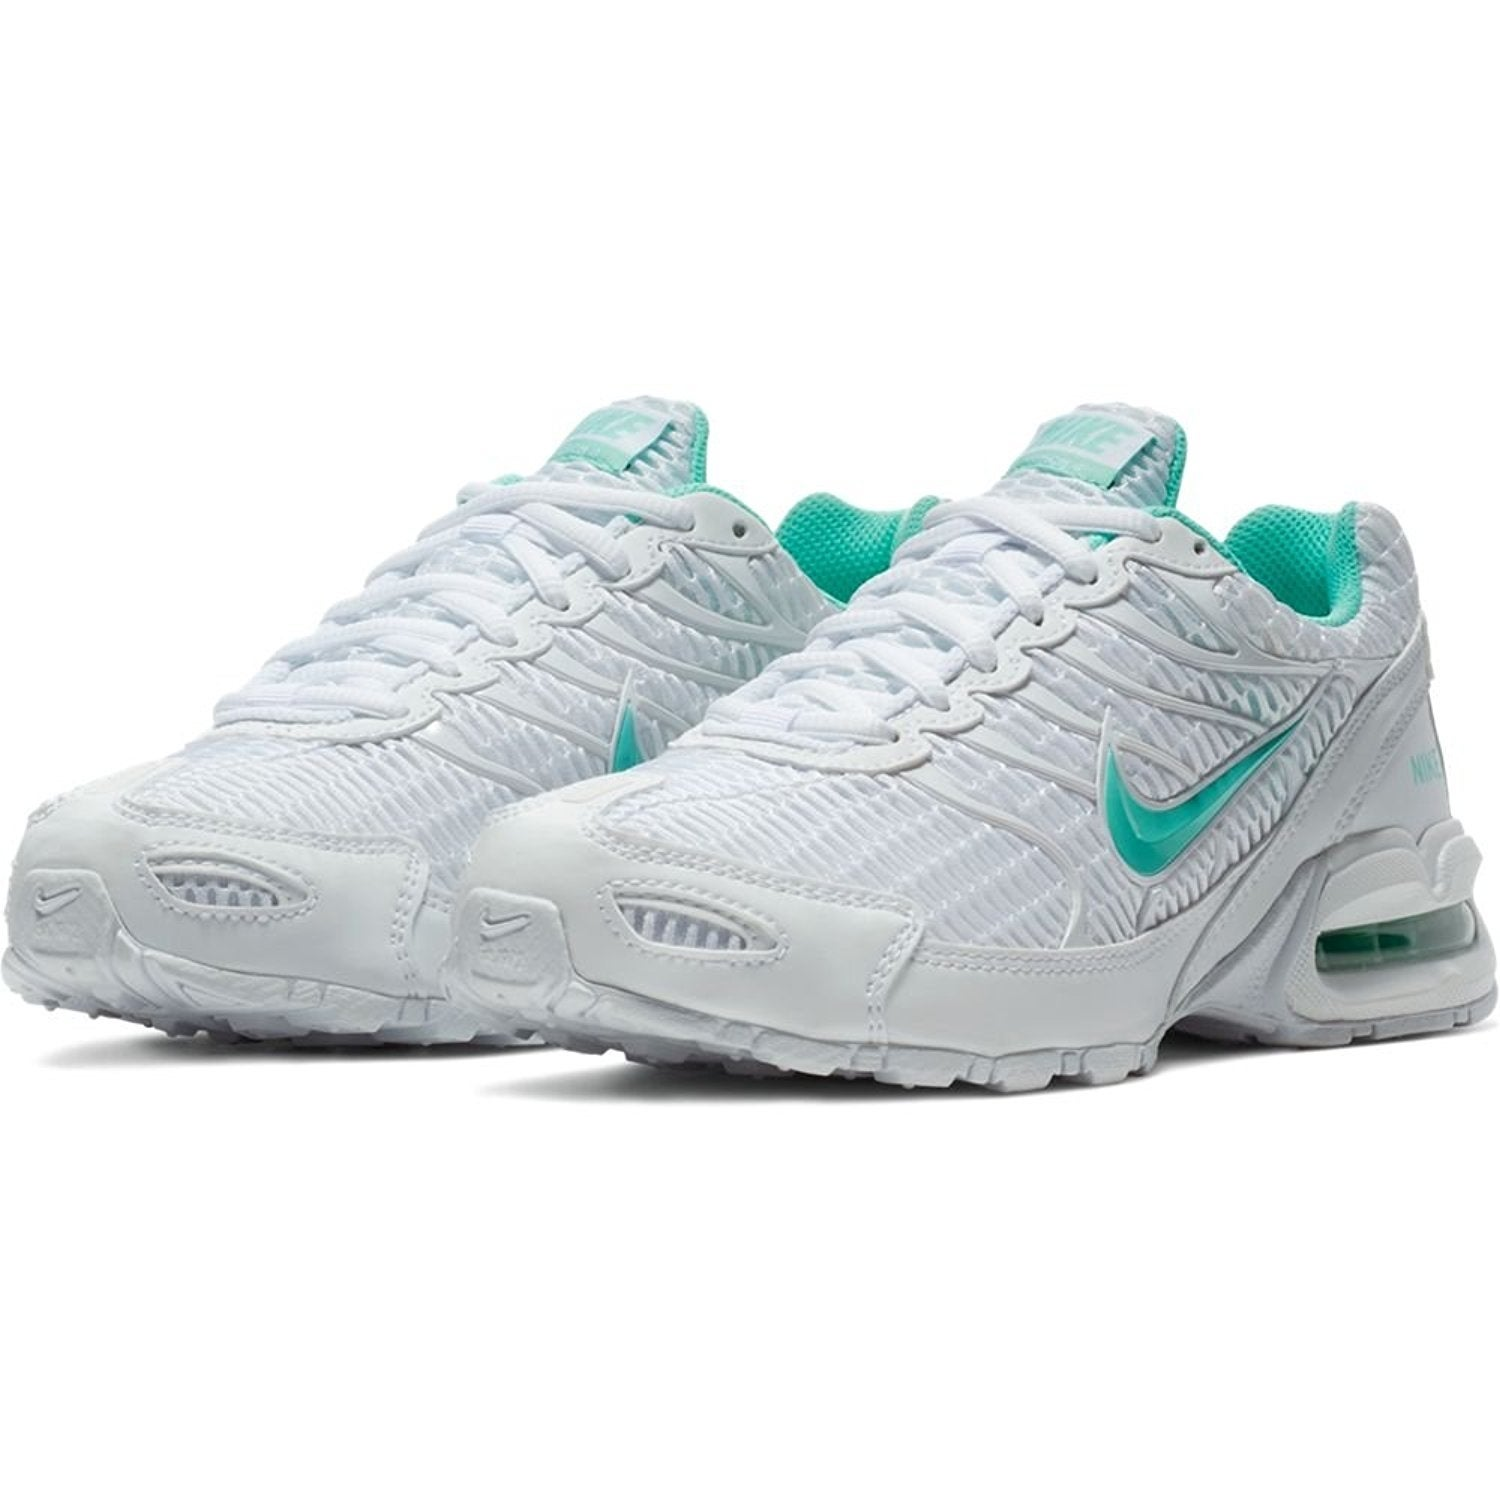 nike women's air max torch 4 running shoes